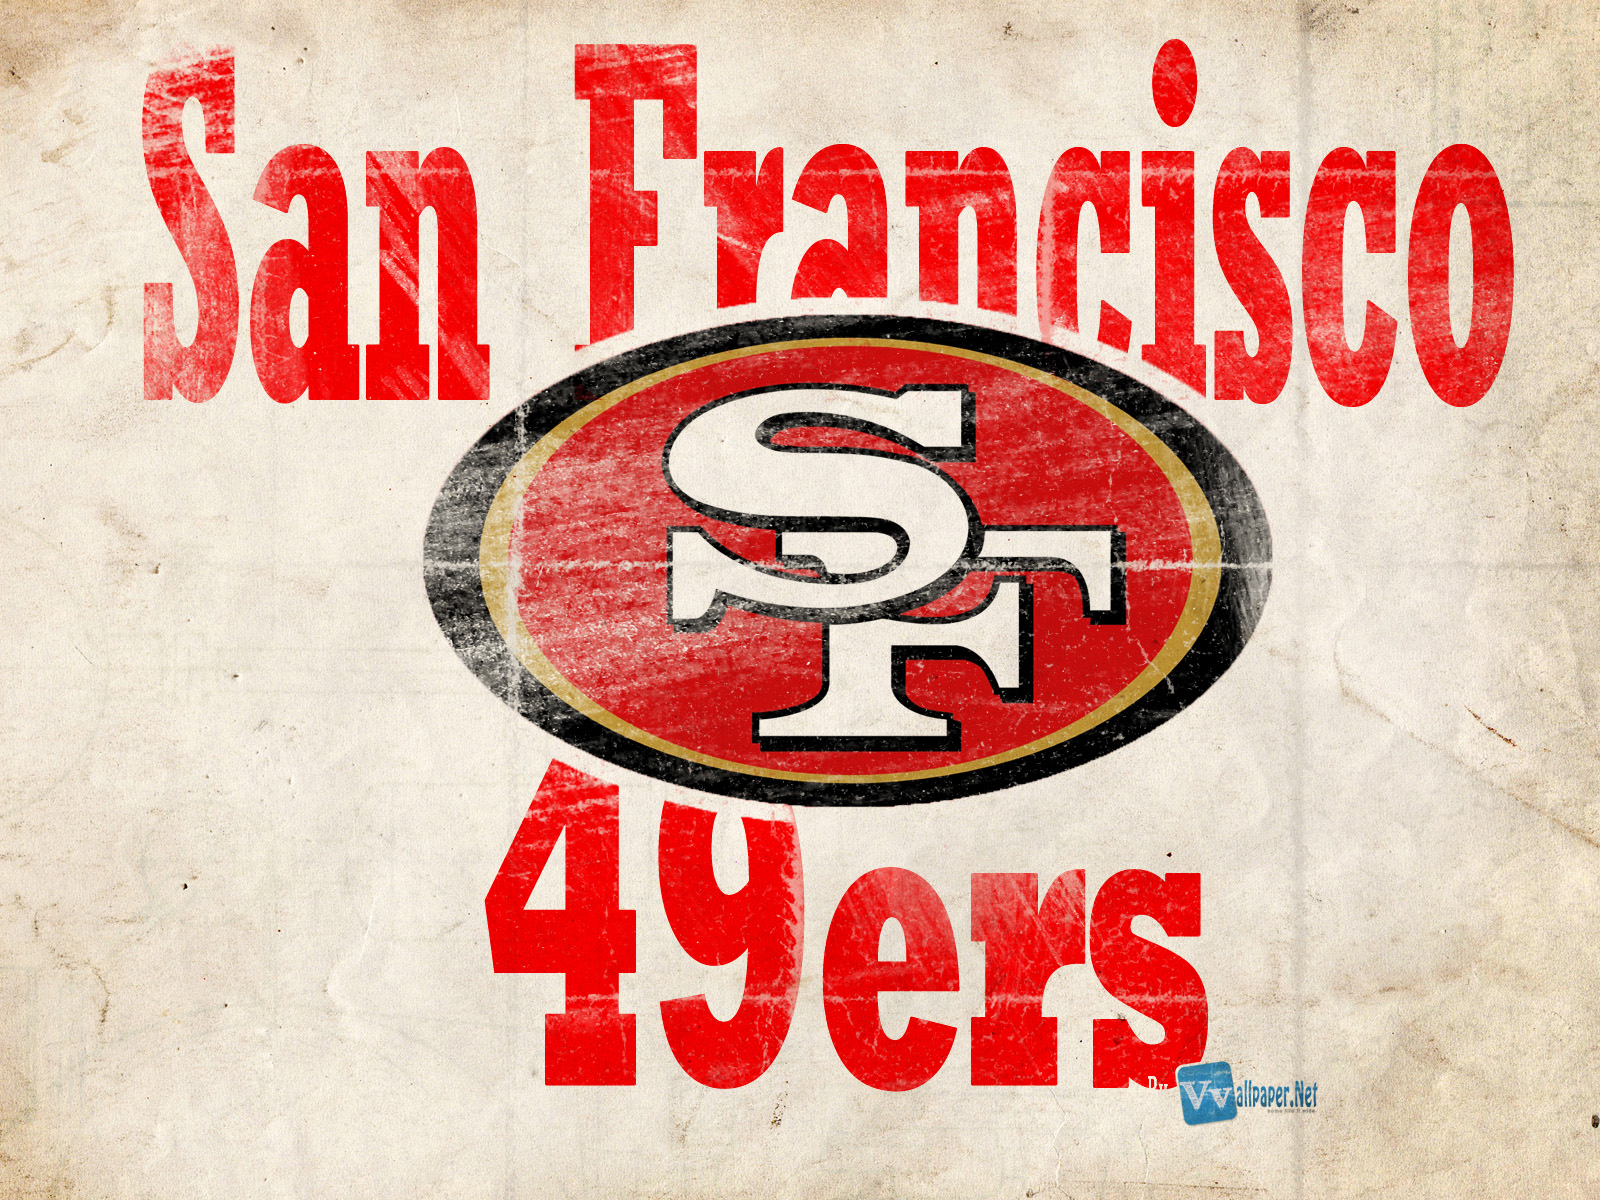 San Francisco 49ers Nfl Team HD Wallpapers Download Wallpapers in 1600x1200